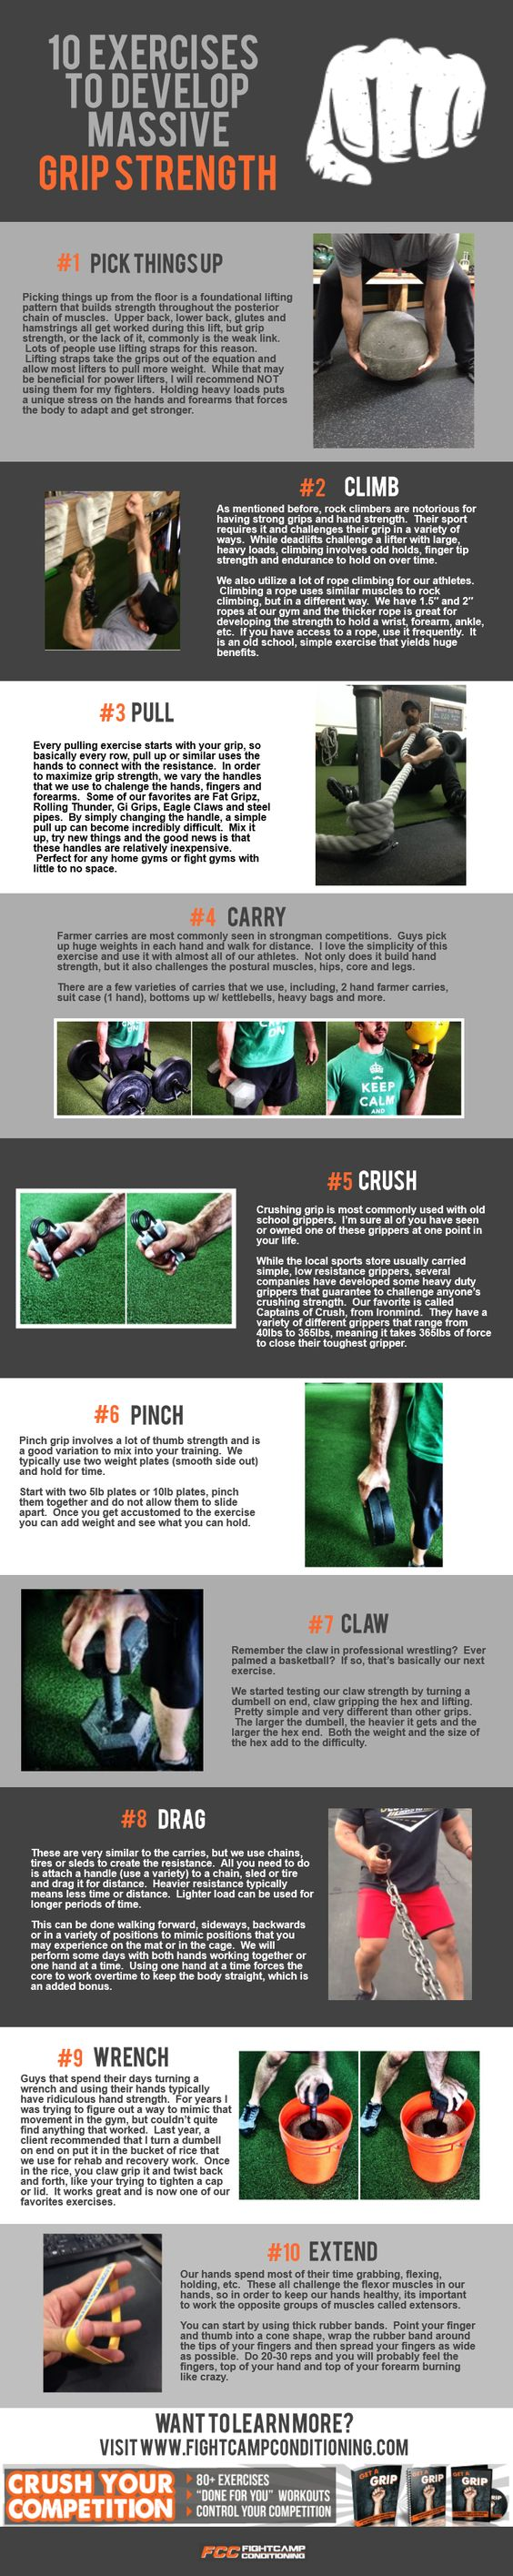 how to develop grip strength